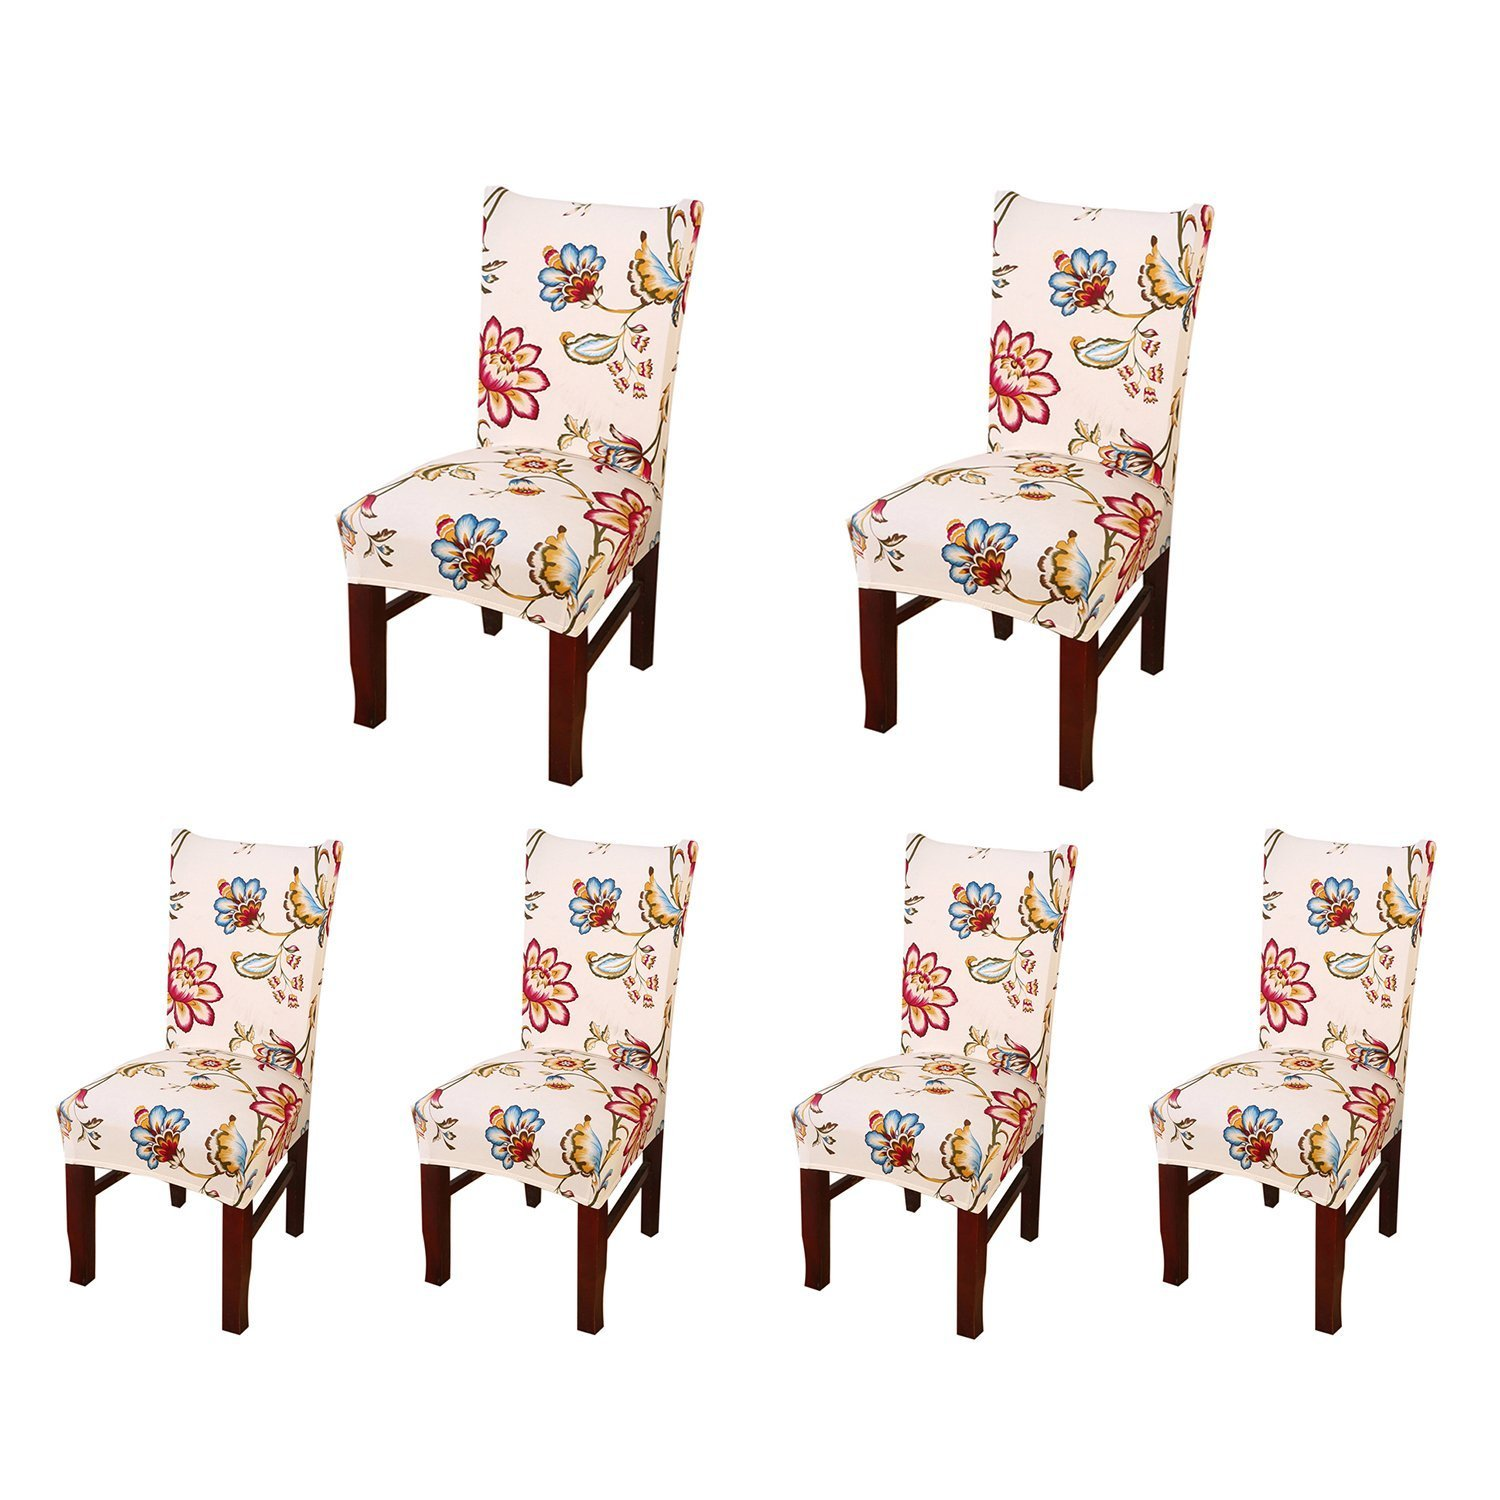 SoulFeel Set of 6 x Stretchable Dining Chair Covers, Spandex Chair Seat Protector Slipcovers for Holiday Banquet, Home Party, Hotel, Wedding Ceremony (Style 34, Floral) by SoulFeel